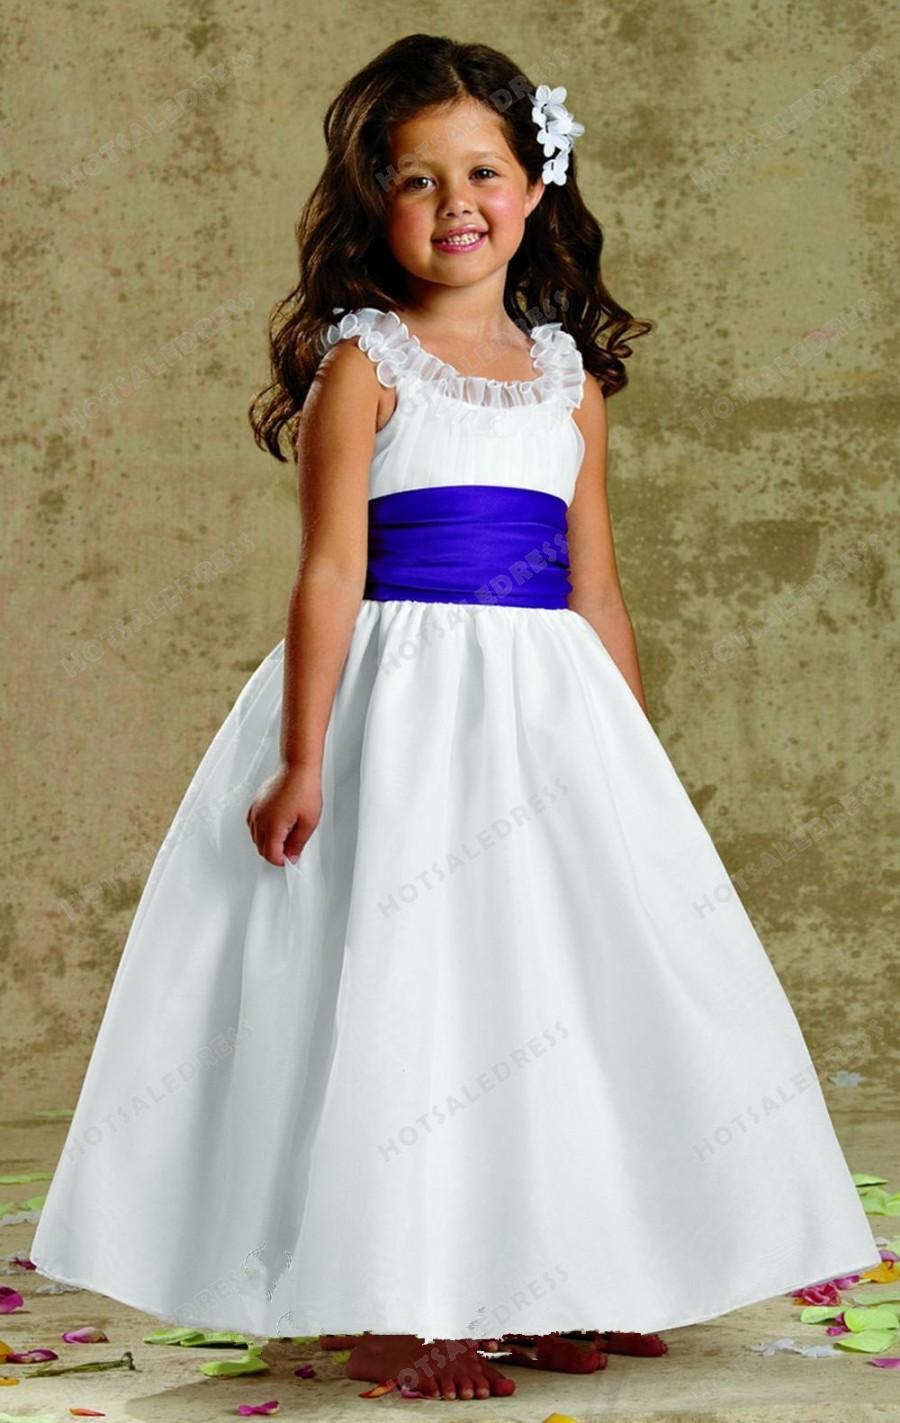 Wedding - Dresses From Jordan Sweet Beginnings Collection L972